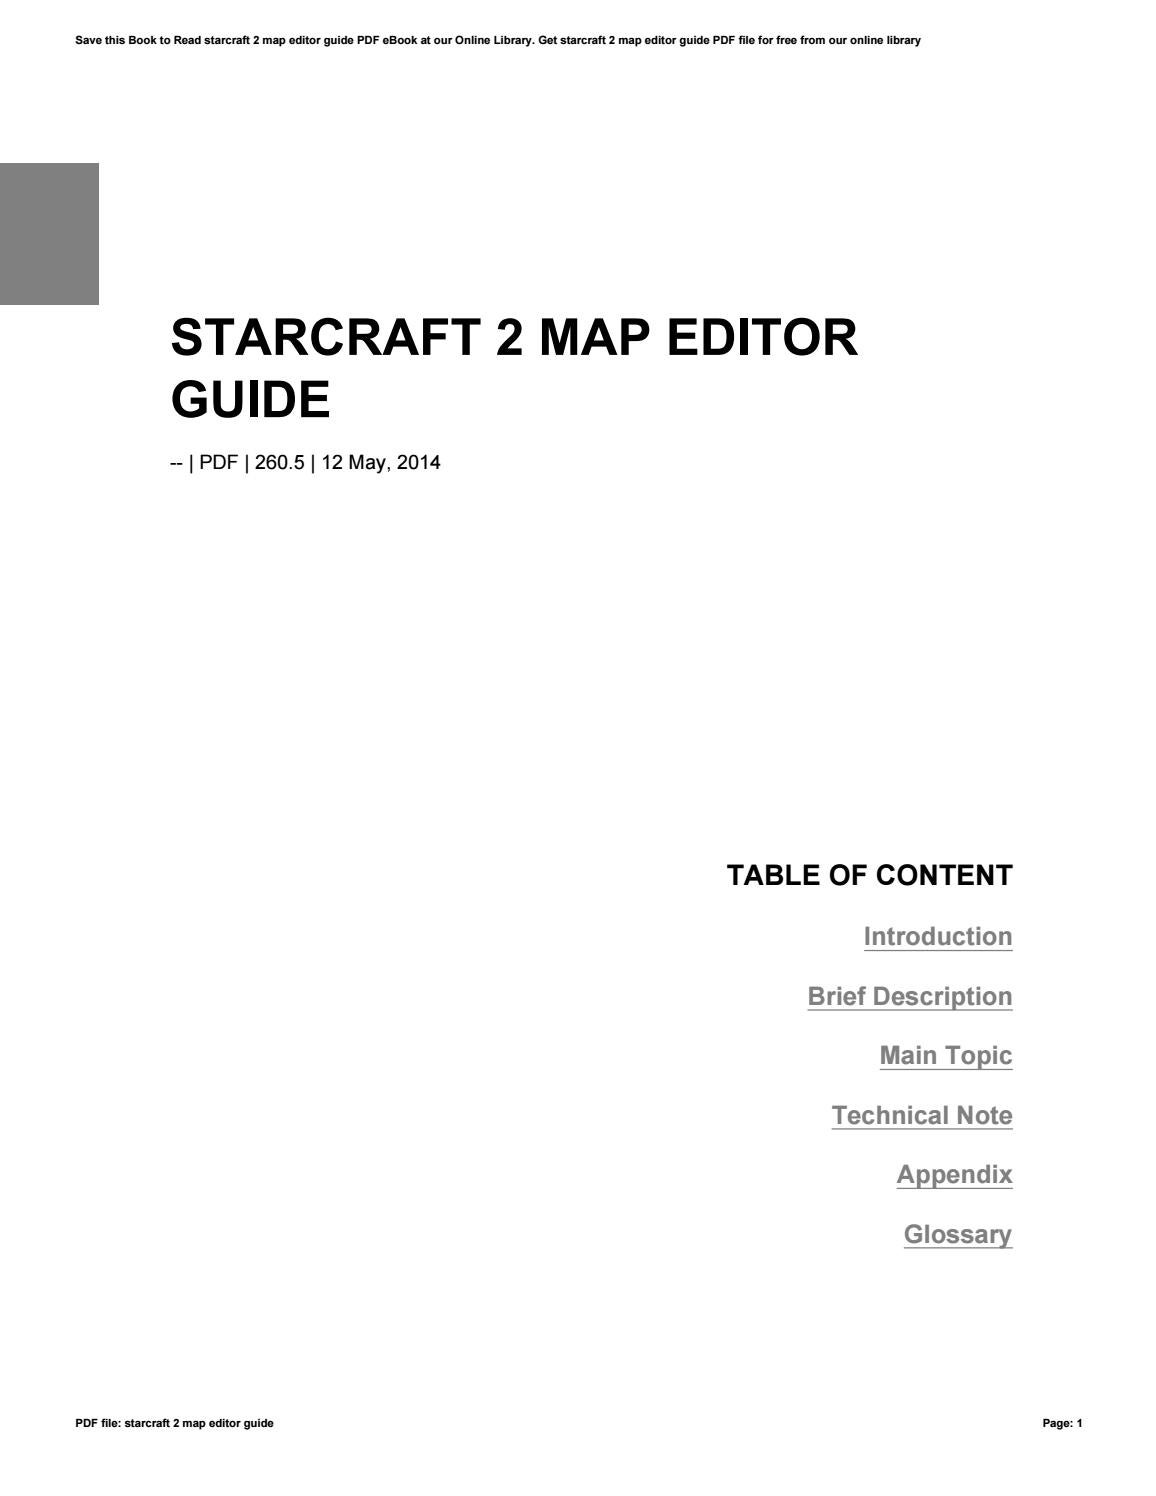 Starcraft 2 map editor guide by mor1944 - issuu